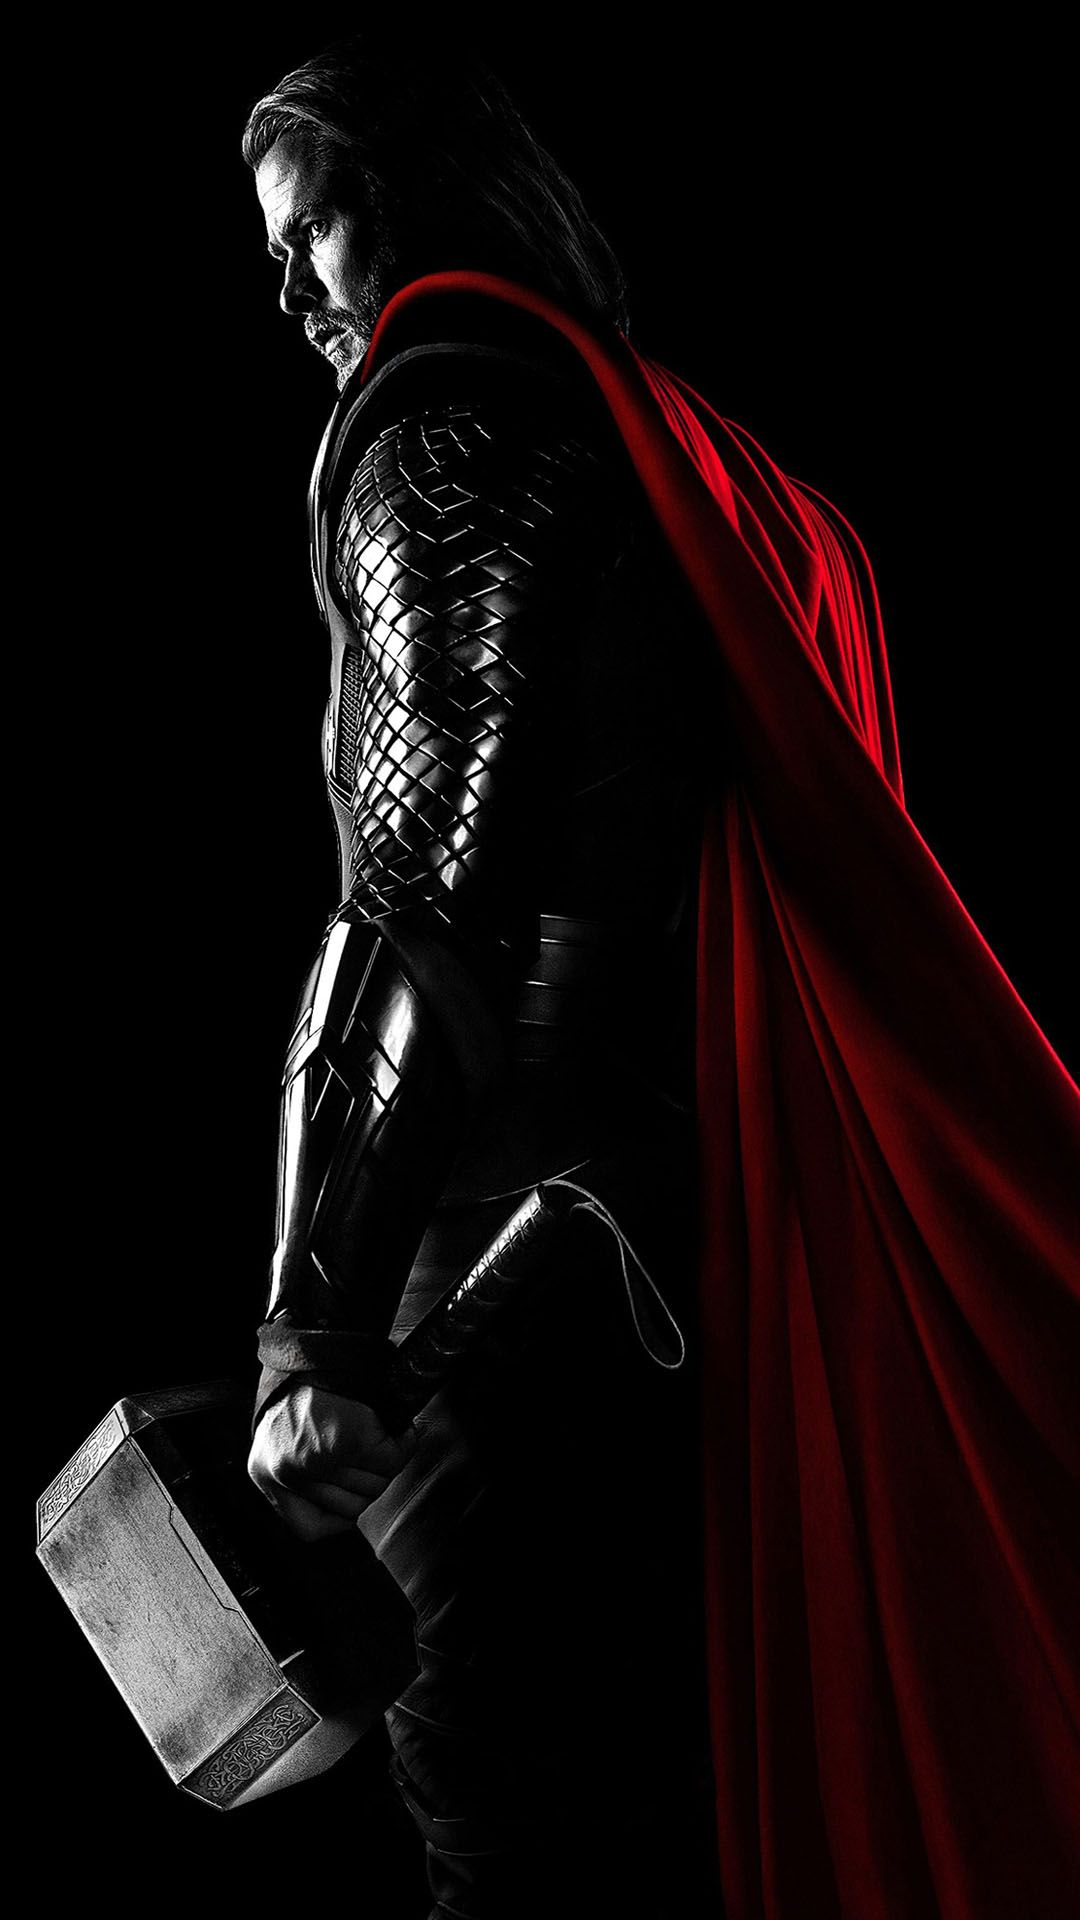 Mobile Hd Wallpaper Thor Wallpaper Hd 1080x1920 Supportive Guru